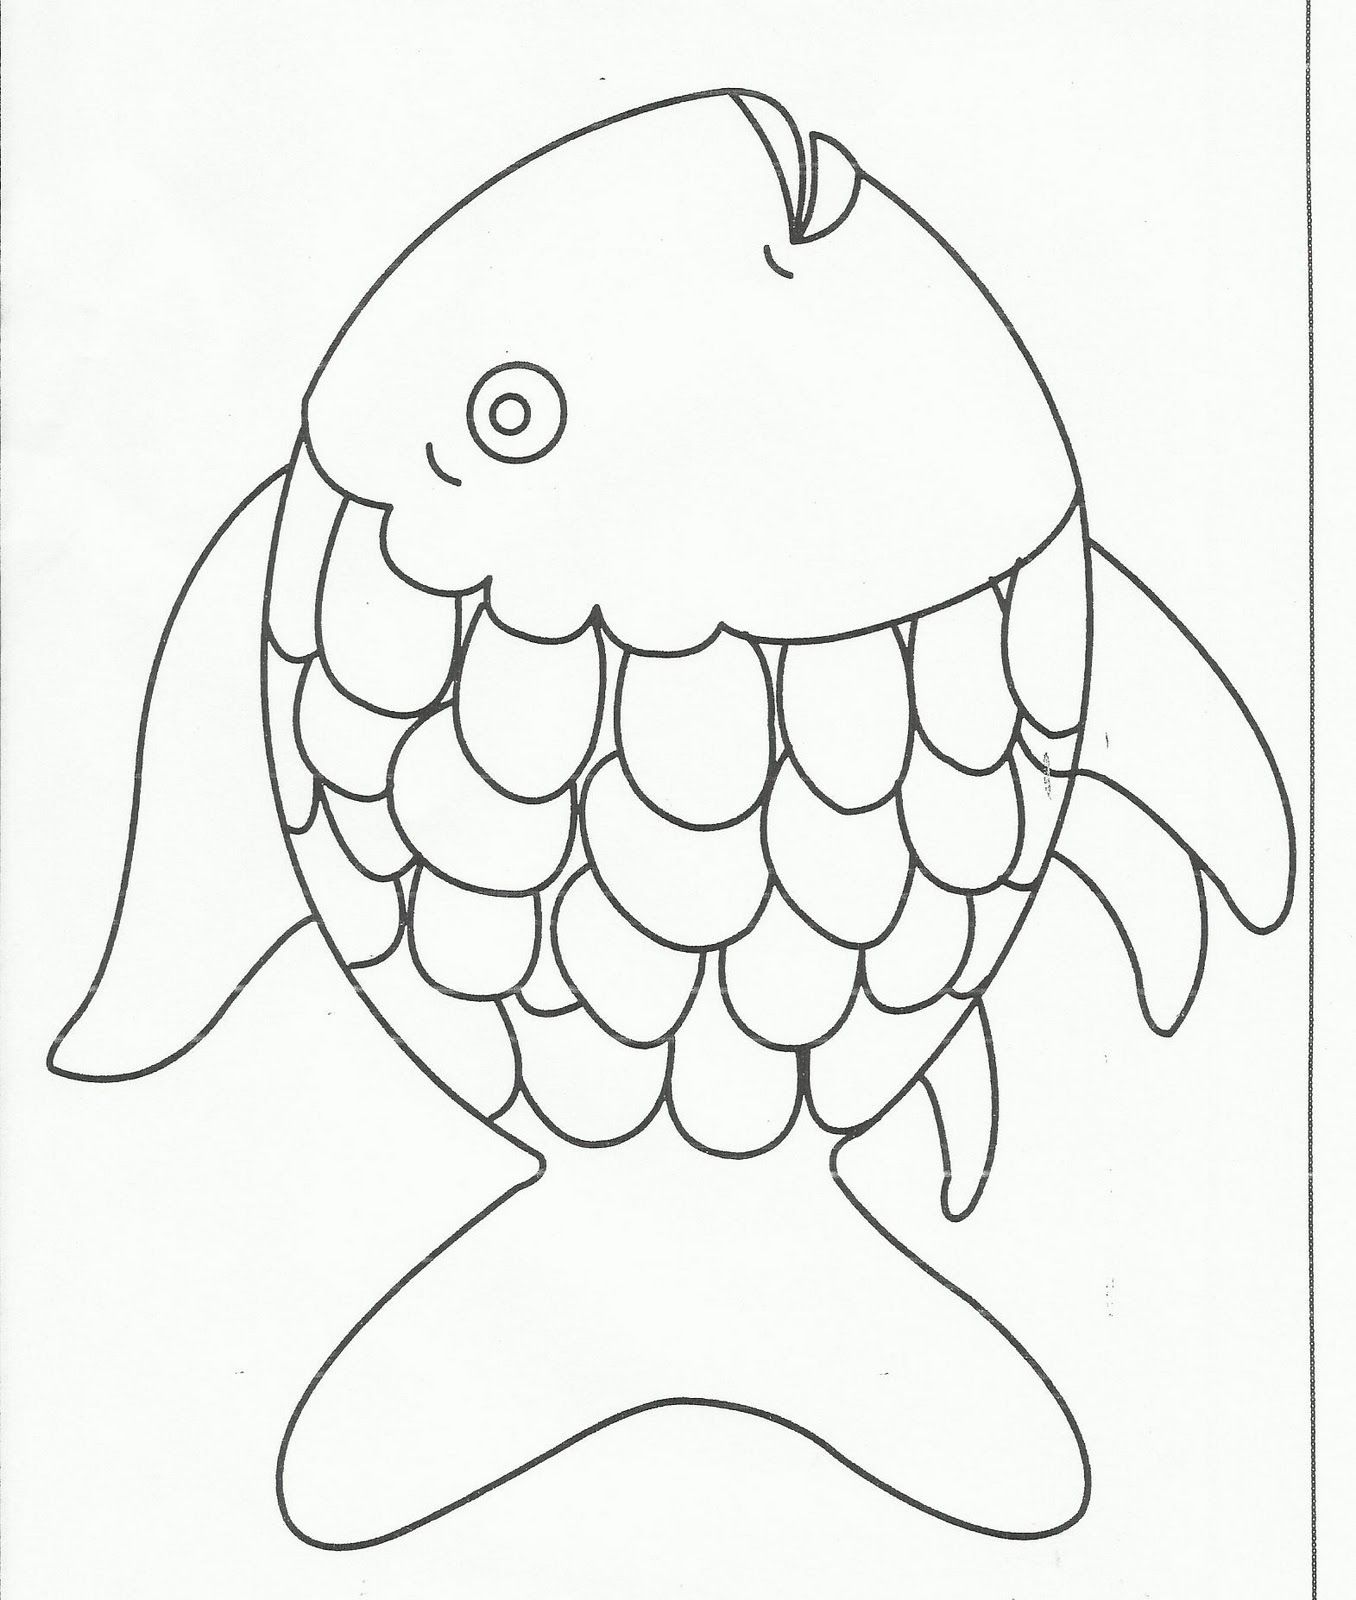 Rainbow Fish Coloring Page Free Large Images C 4 Pinterest